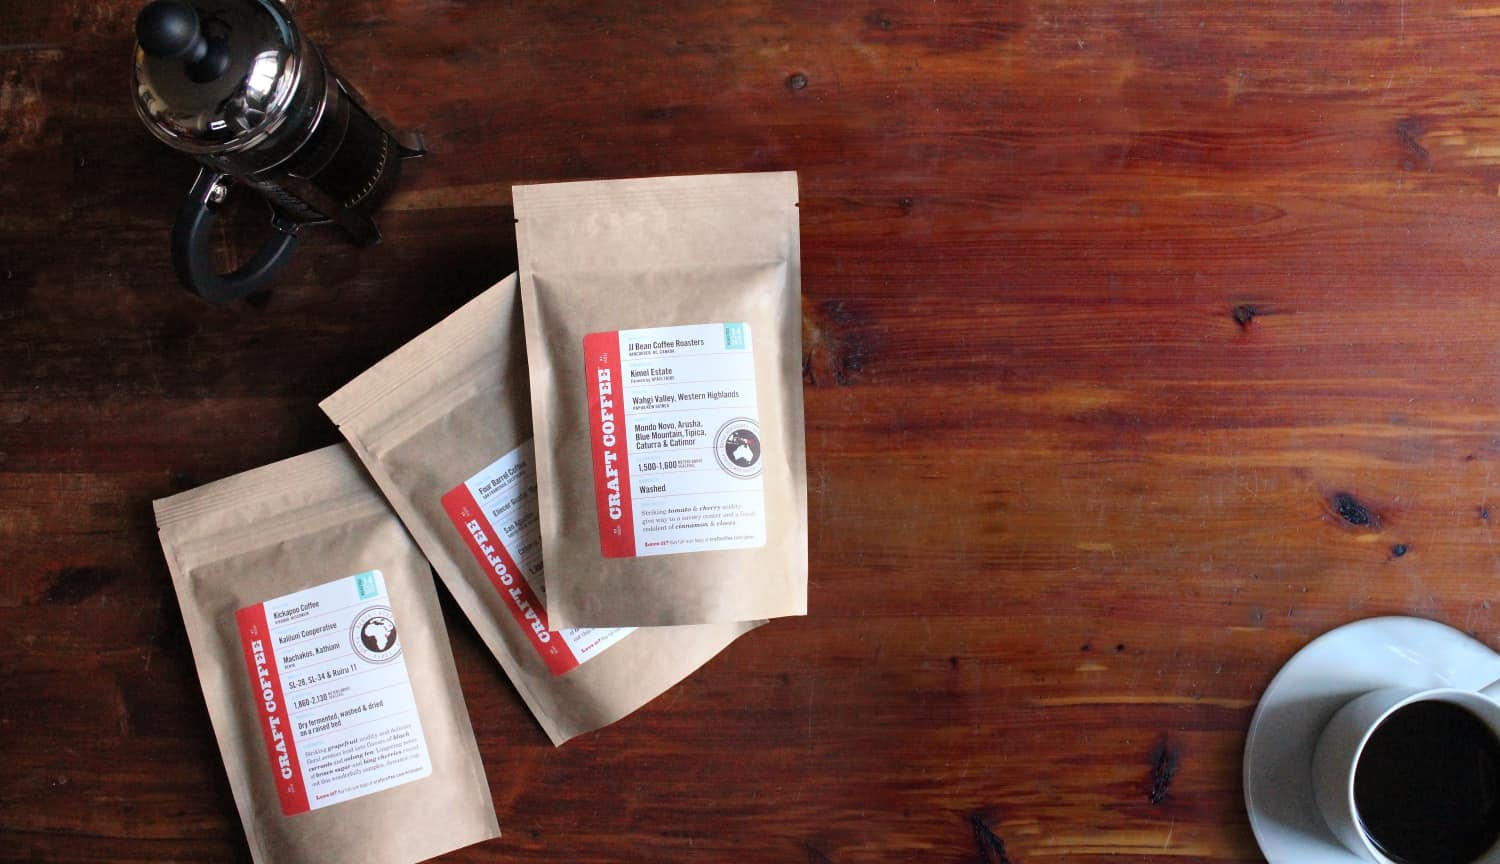 10 Coffee Subscriptions that Let You Have Coffee Beans Delivered to Your Door